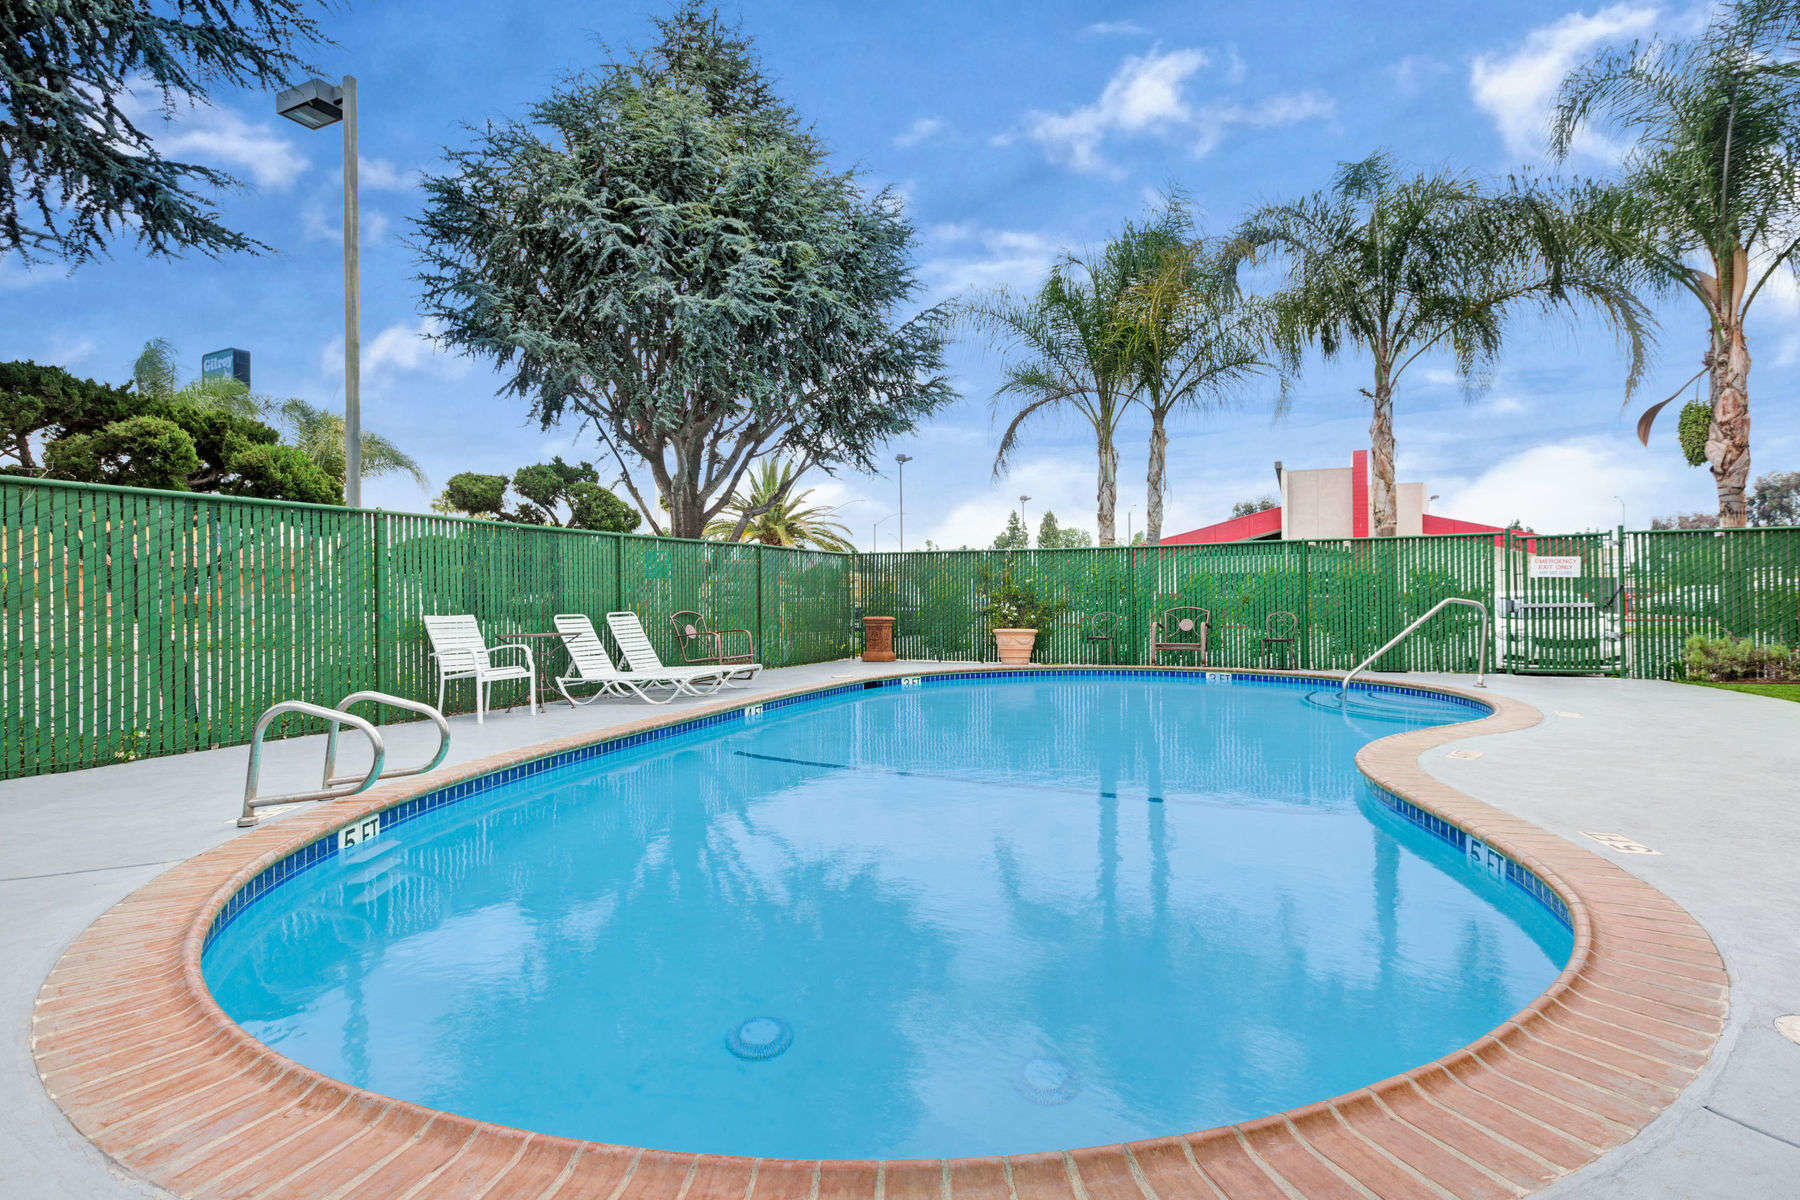 Gilroy Ca Hotels And Motels